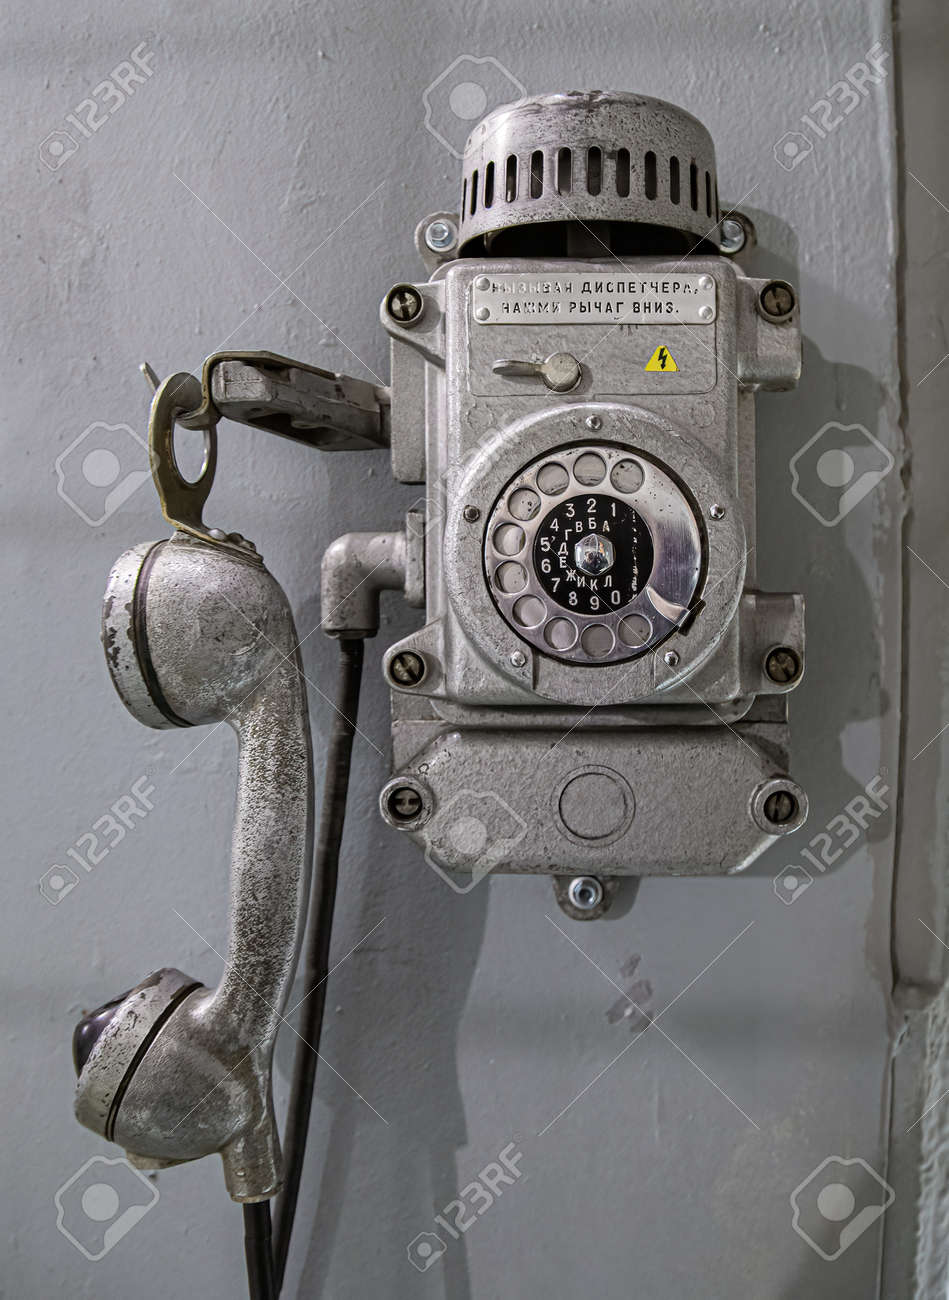 Old metal wall-mounted telephone with rotary dial. Antique phone with dial - 169111918